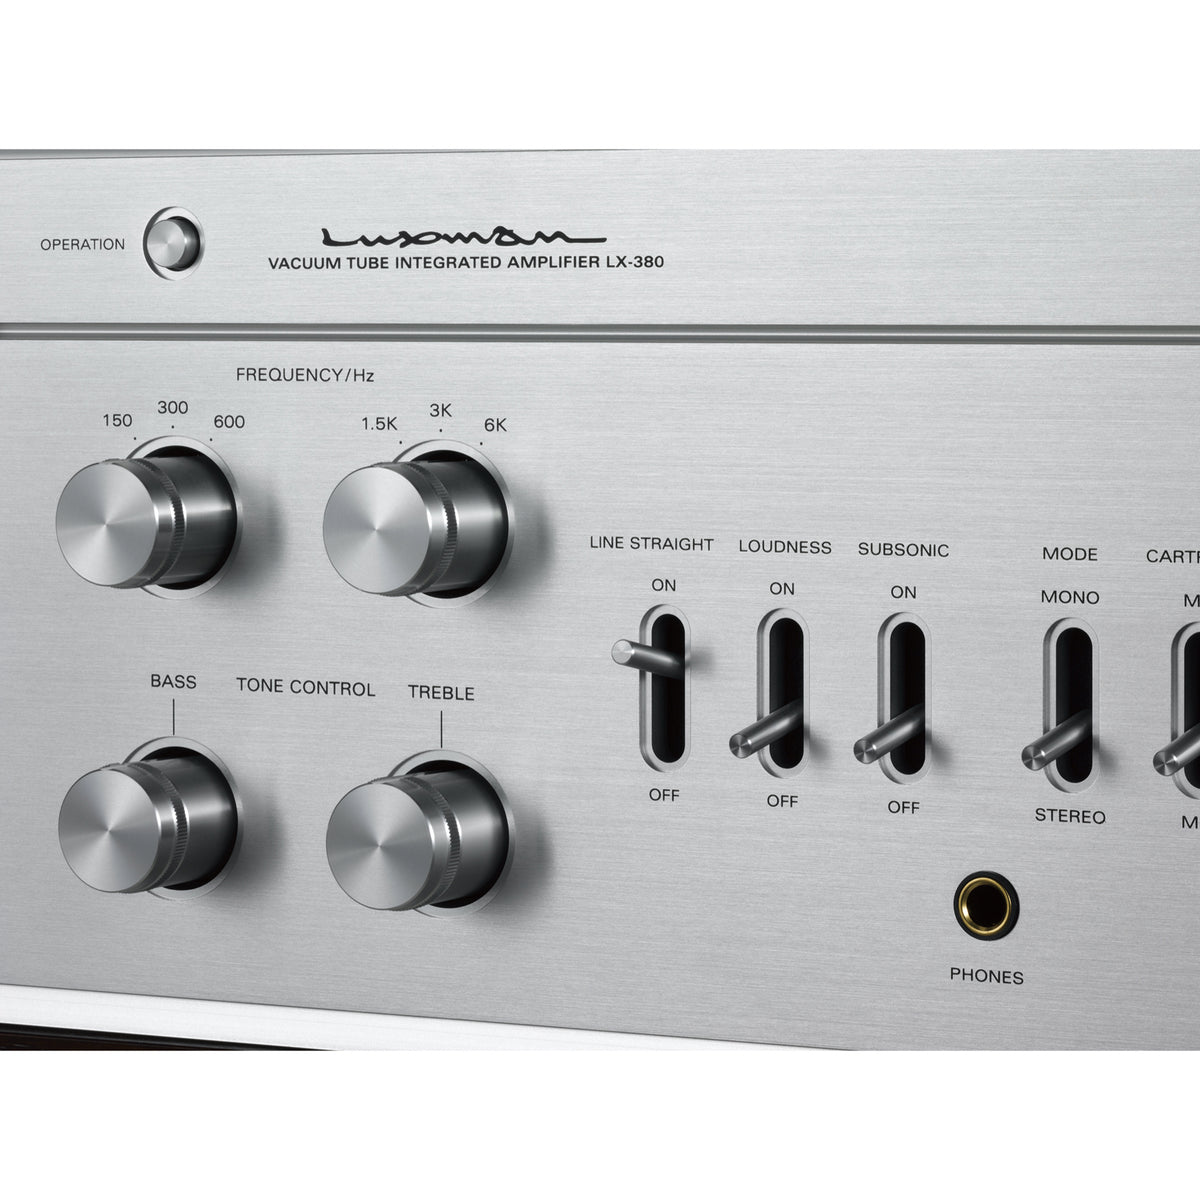 LX-380 Tube Integrated Amplifier